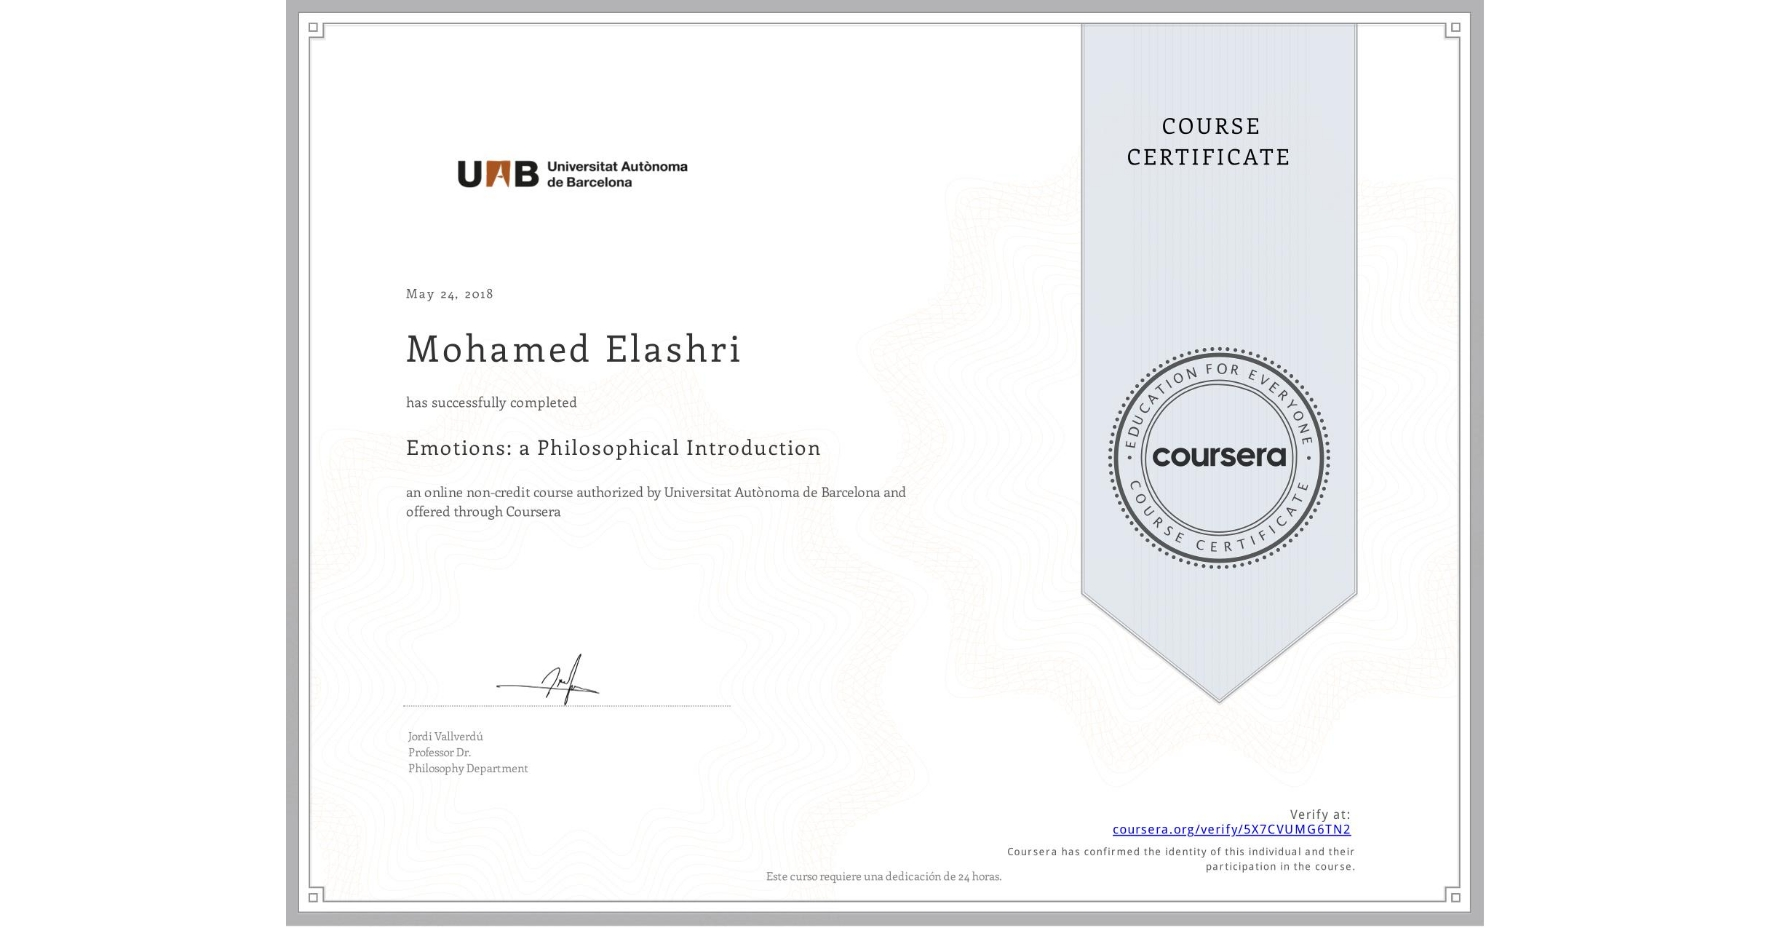 View certificate for Mohamed Elashri, Emotions: a Philosophical Introduction, an online non-credit course authorized by Universitat Autònoma de Barcelona and offered through Coursera